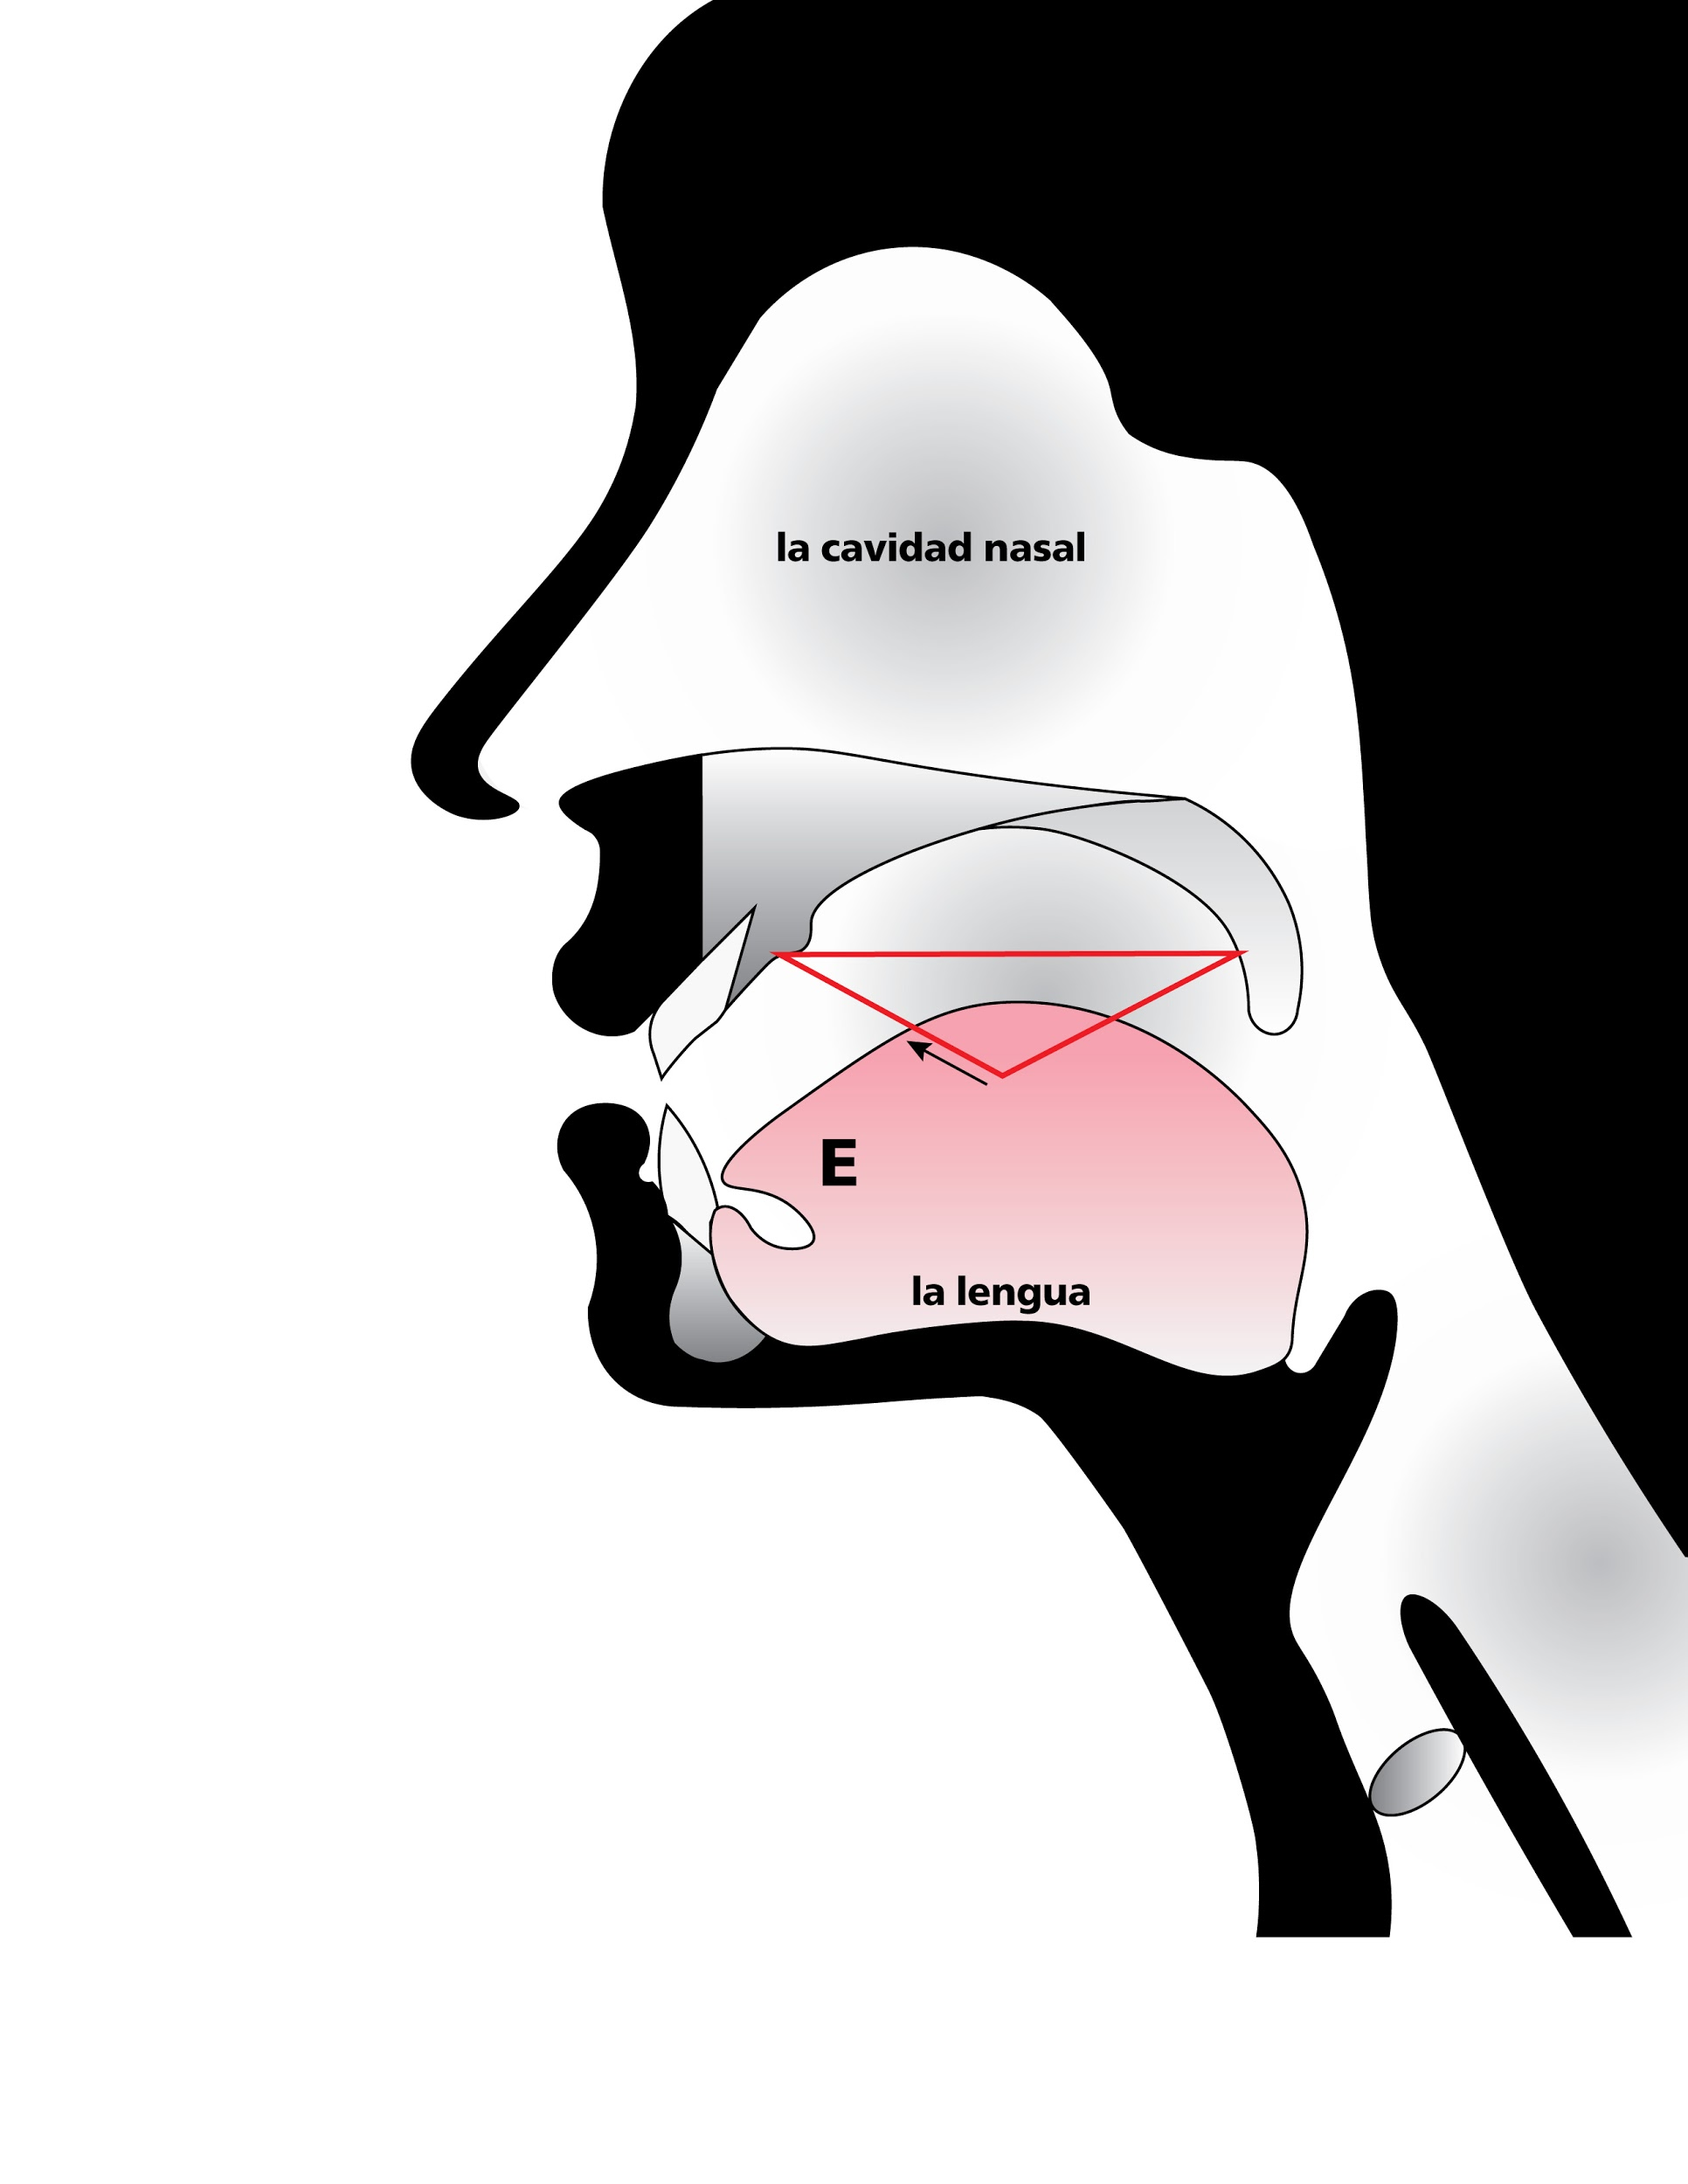 Anatomical sketch of head while speaking, emphasizing space of roof of mouth when tongue partly raised, in Spanish